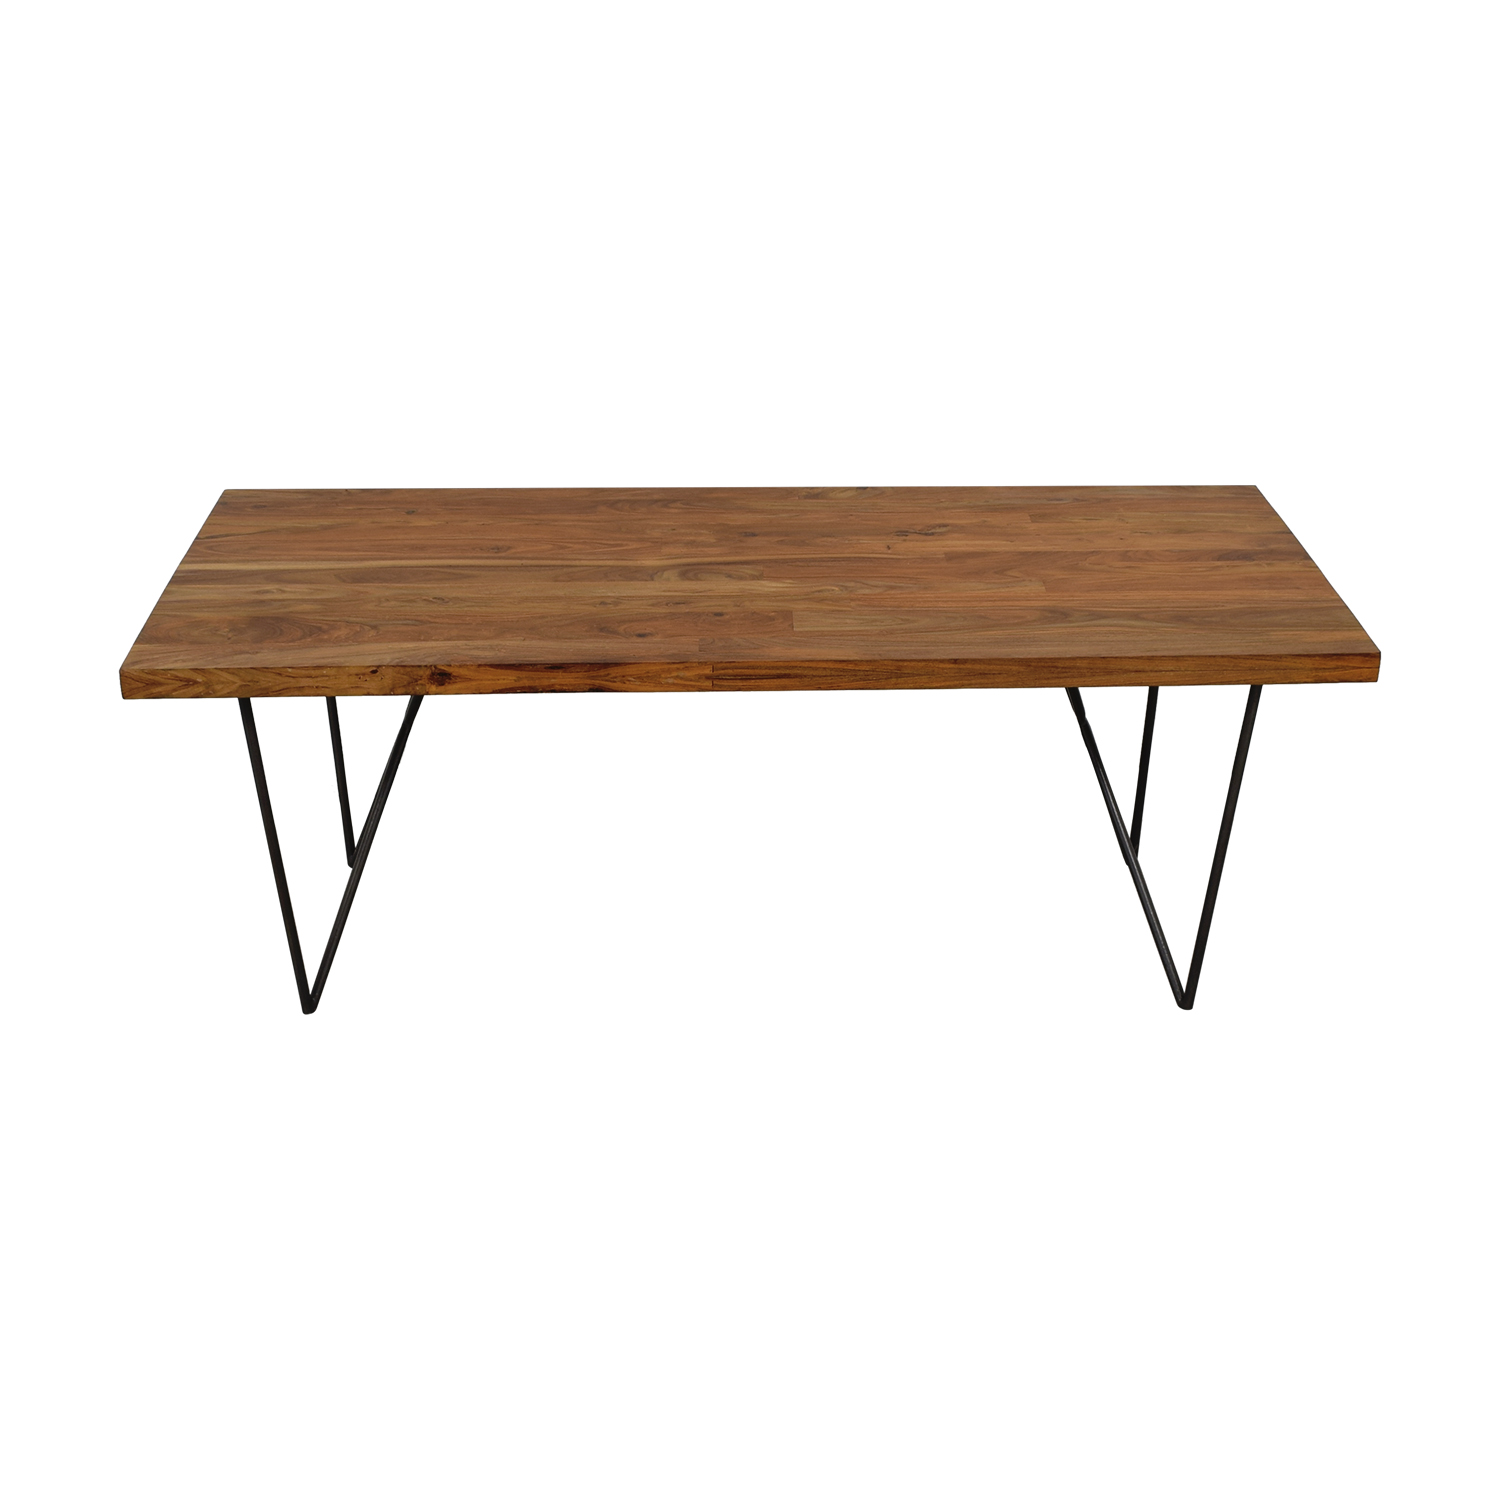 shop CB2 CB2 Dylan Wood Dining Table online